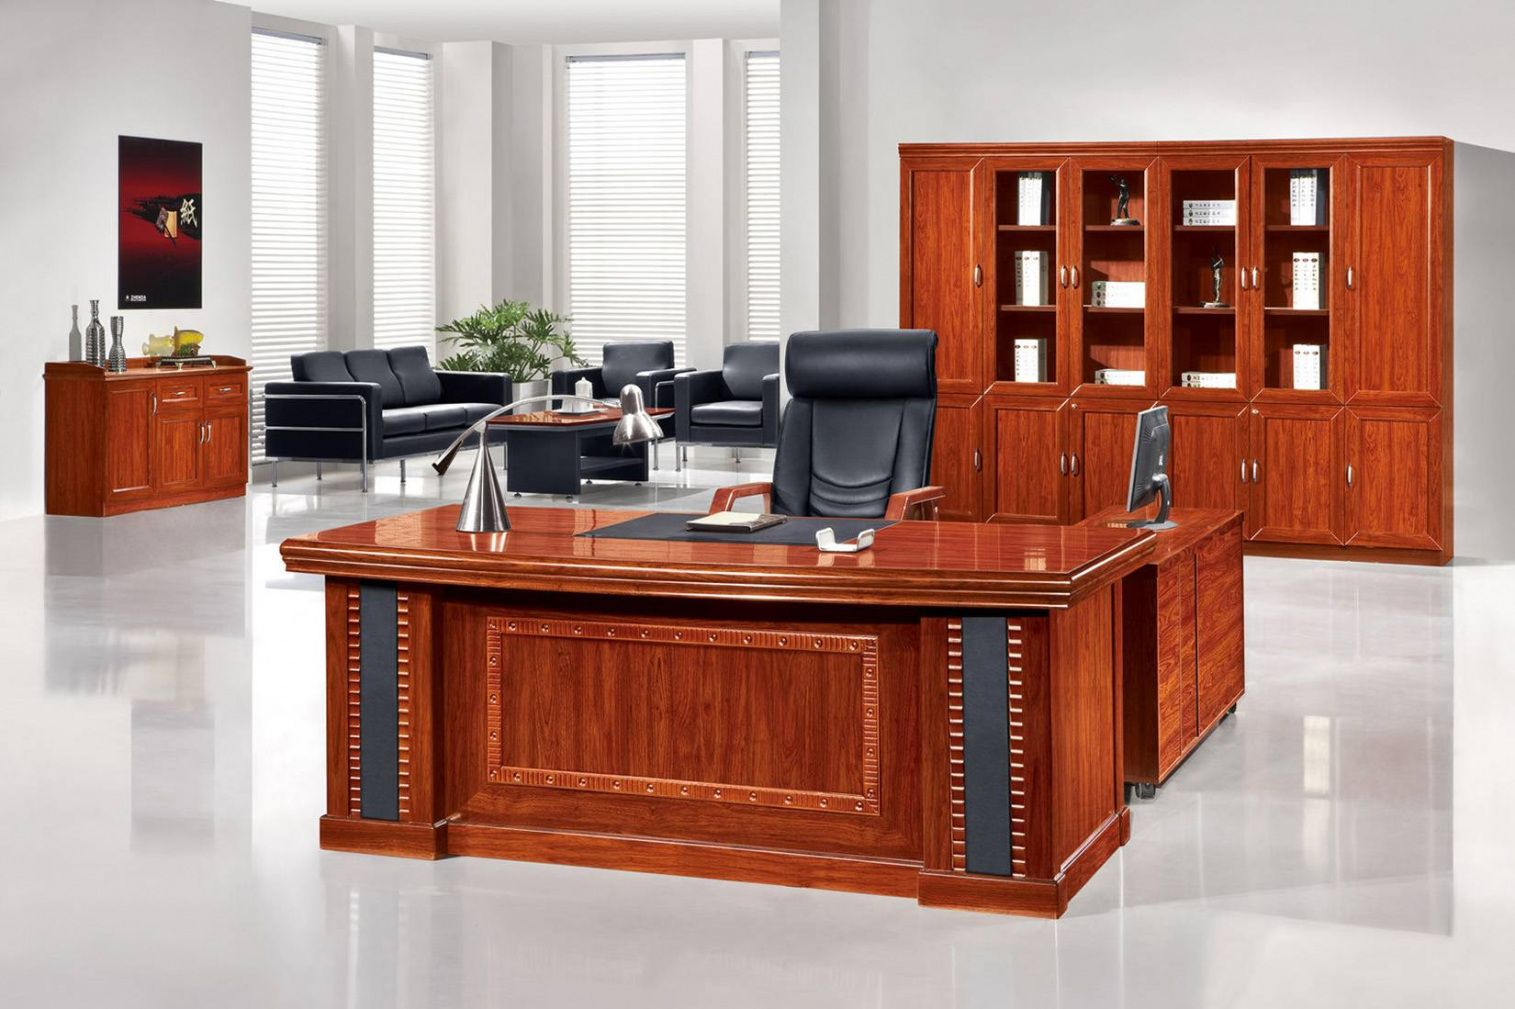 Wooden Office Desks Home Office Furniture Set Check More At Http Www Drjamesghoodblo Office Desk Designs Home Office Furniture Sets Office Furniture Design